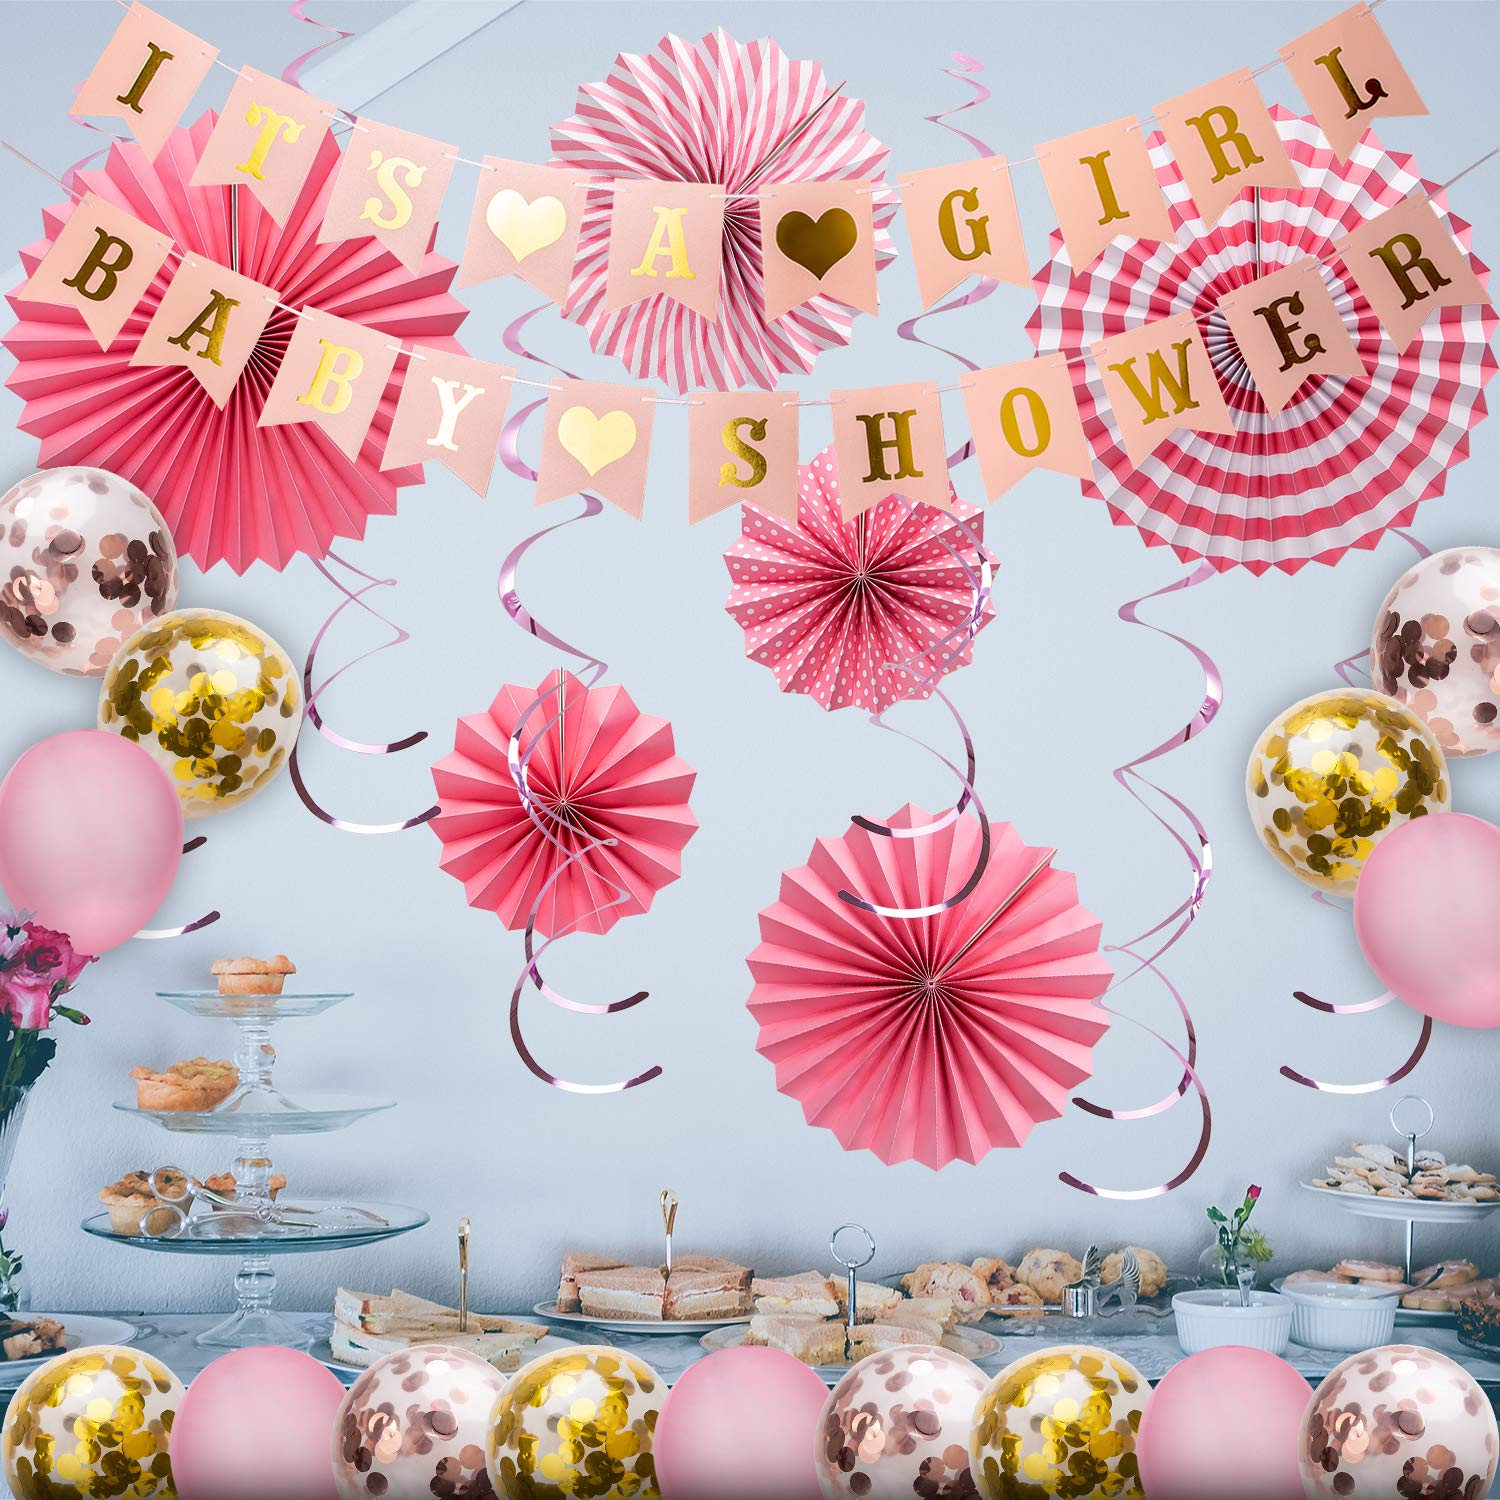 Papierfächer Gold Spirale Ornamente Dekor für Geschenkparty Decor Konfetti-Ballons Latexballons SAVITA Its A Boy Papier Girlande Banner für Jungen Baby Shower Party Dekorations Set